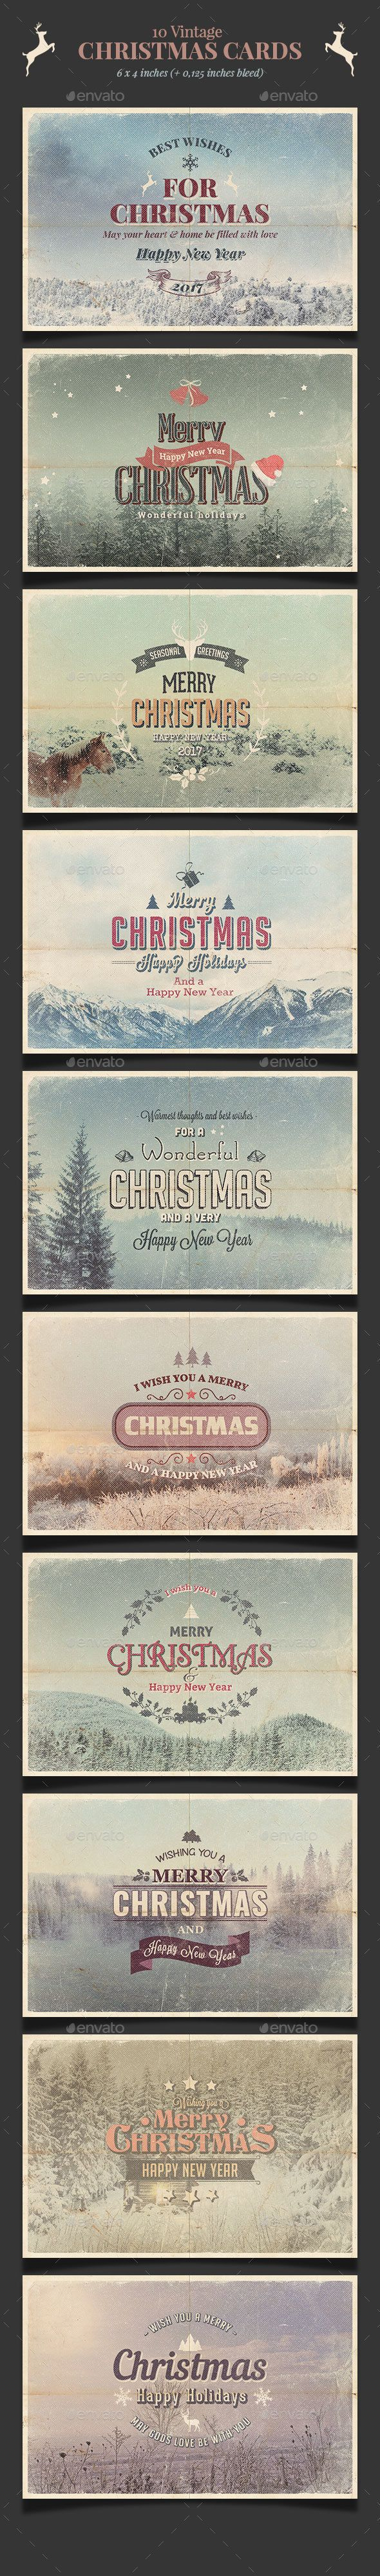 10 Vintage Christmas Cards / Backgrounds PSD — PSD Template #christmas #typography • Download ➝ https://graphicriver.net/item/10-vintage-christmas-cards-backgrounds-psd/18332001?ref=pxcr